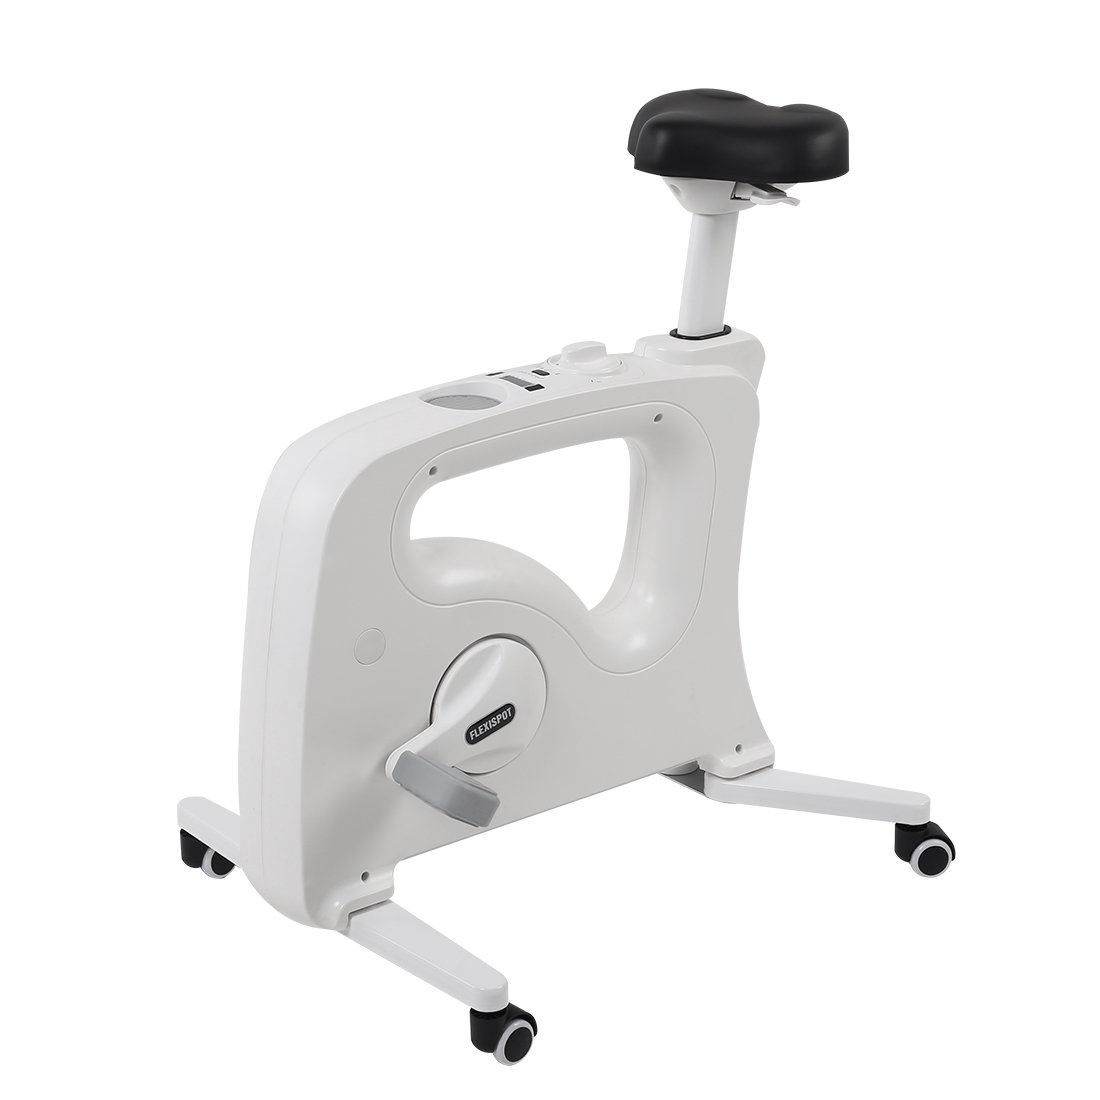 FLEXISPOT Home Office Under Desk Exercise Bike Height Adjustable Cycle - Deskcise Pro by FLEXISPOT (Image #8)